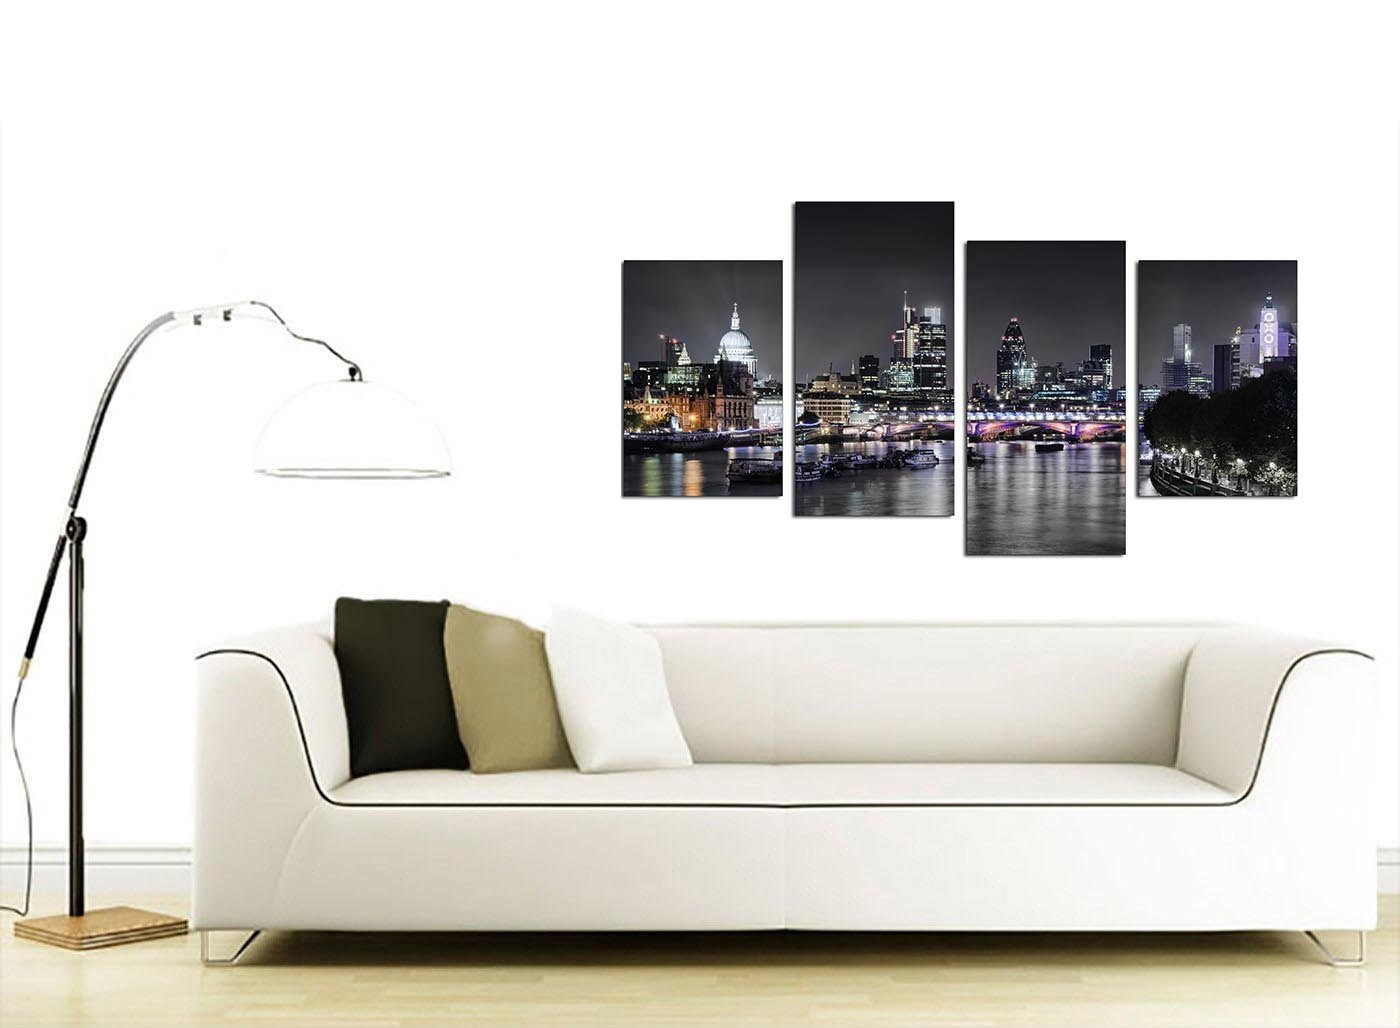 Amazon Wallfillers Canvas Wall Art Of London Skyline For Your Living Room 4 Panel Pictures 130cm X 67cm Black White Posters Prints